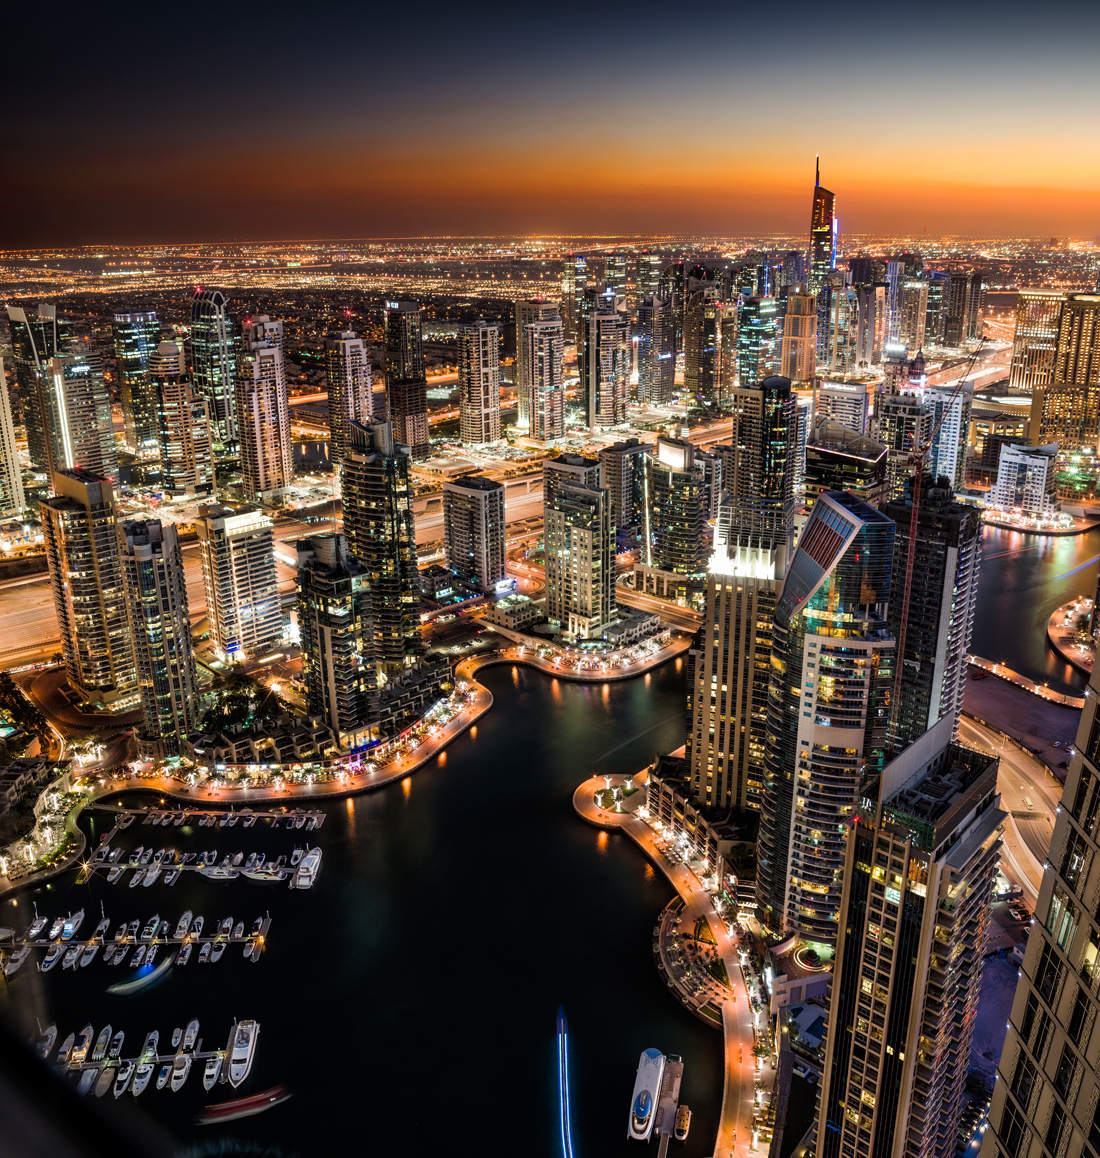 dubai at night, tim wallace commercial photographer, stock photography, commercial photography, tim wallace